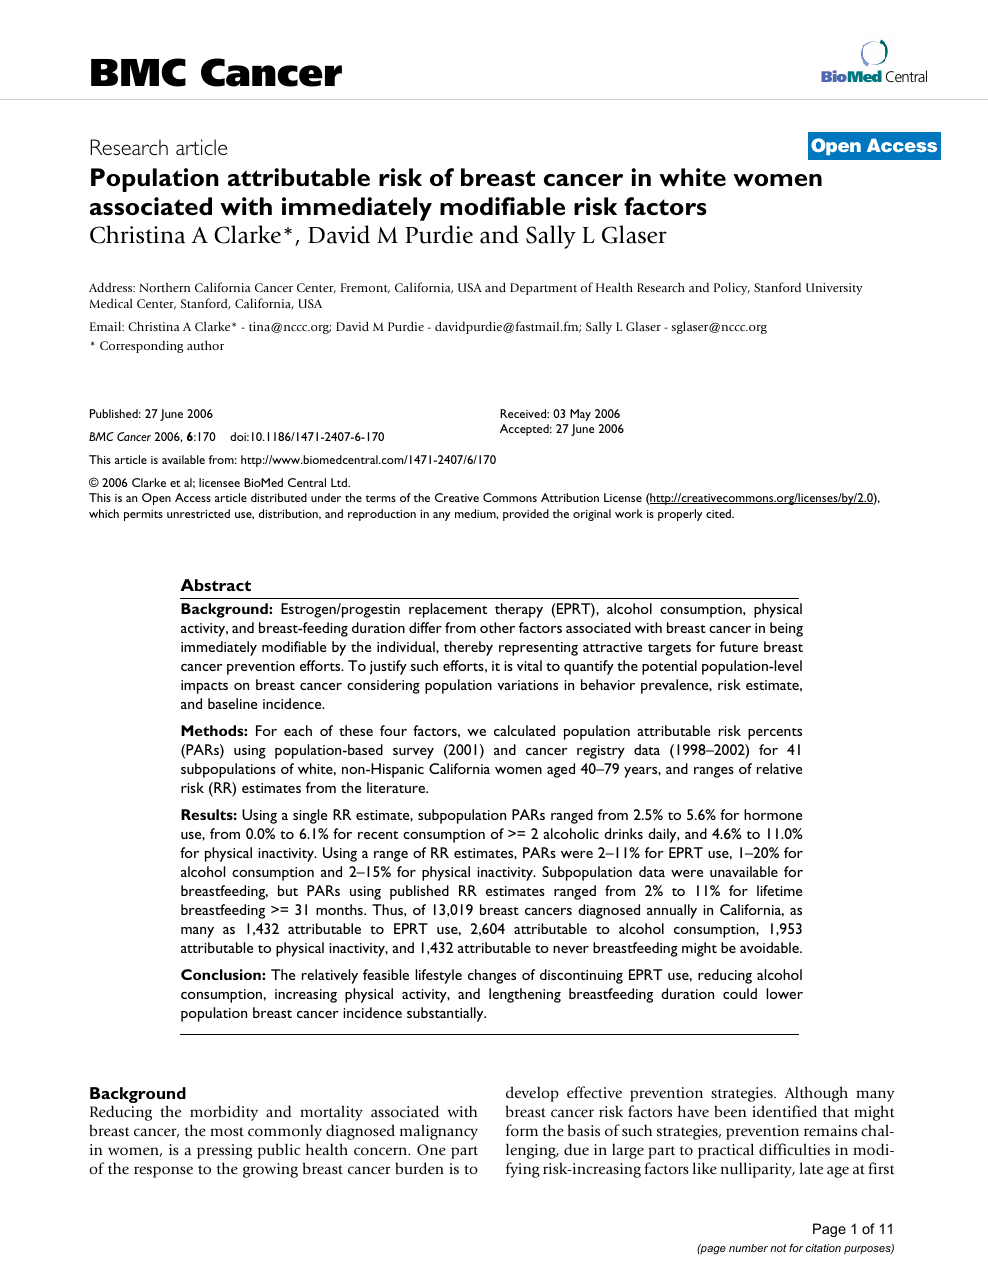 Population attributable risk of breast cancer in white women